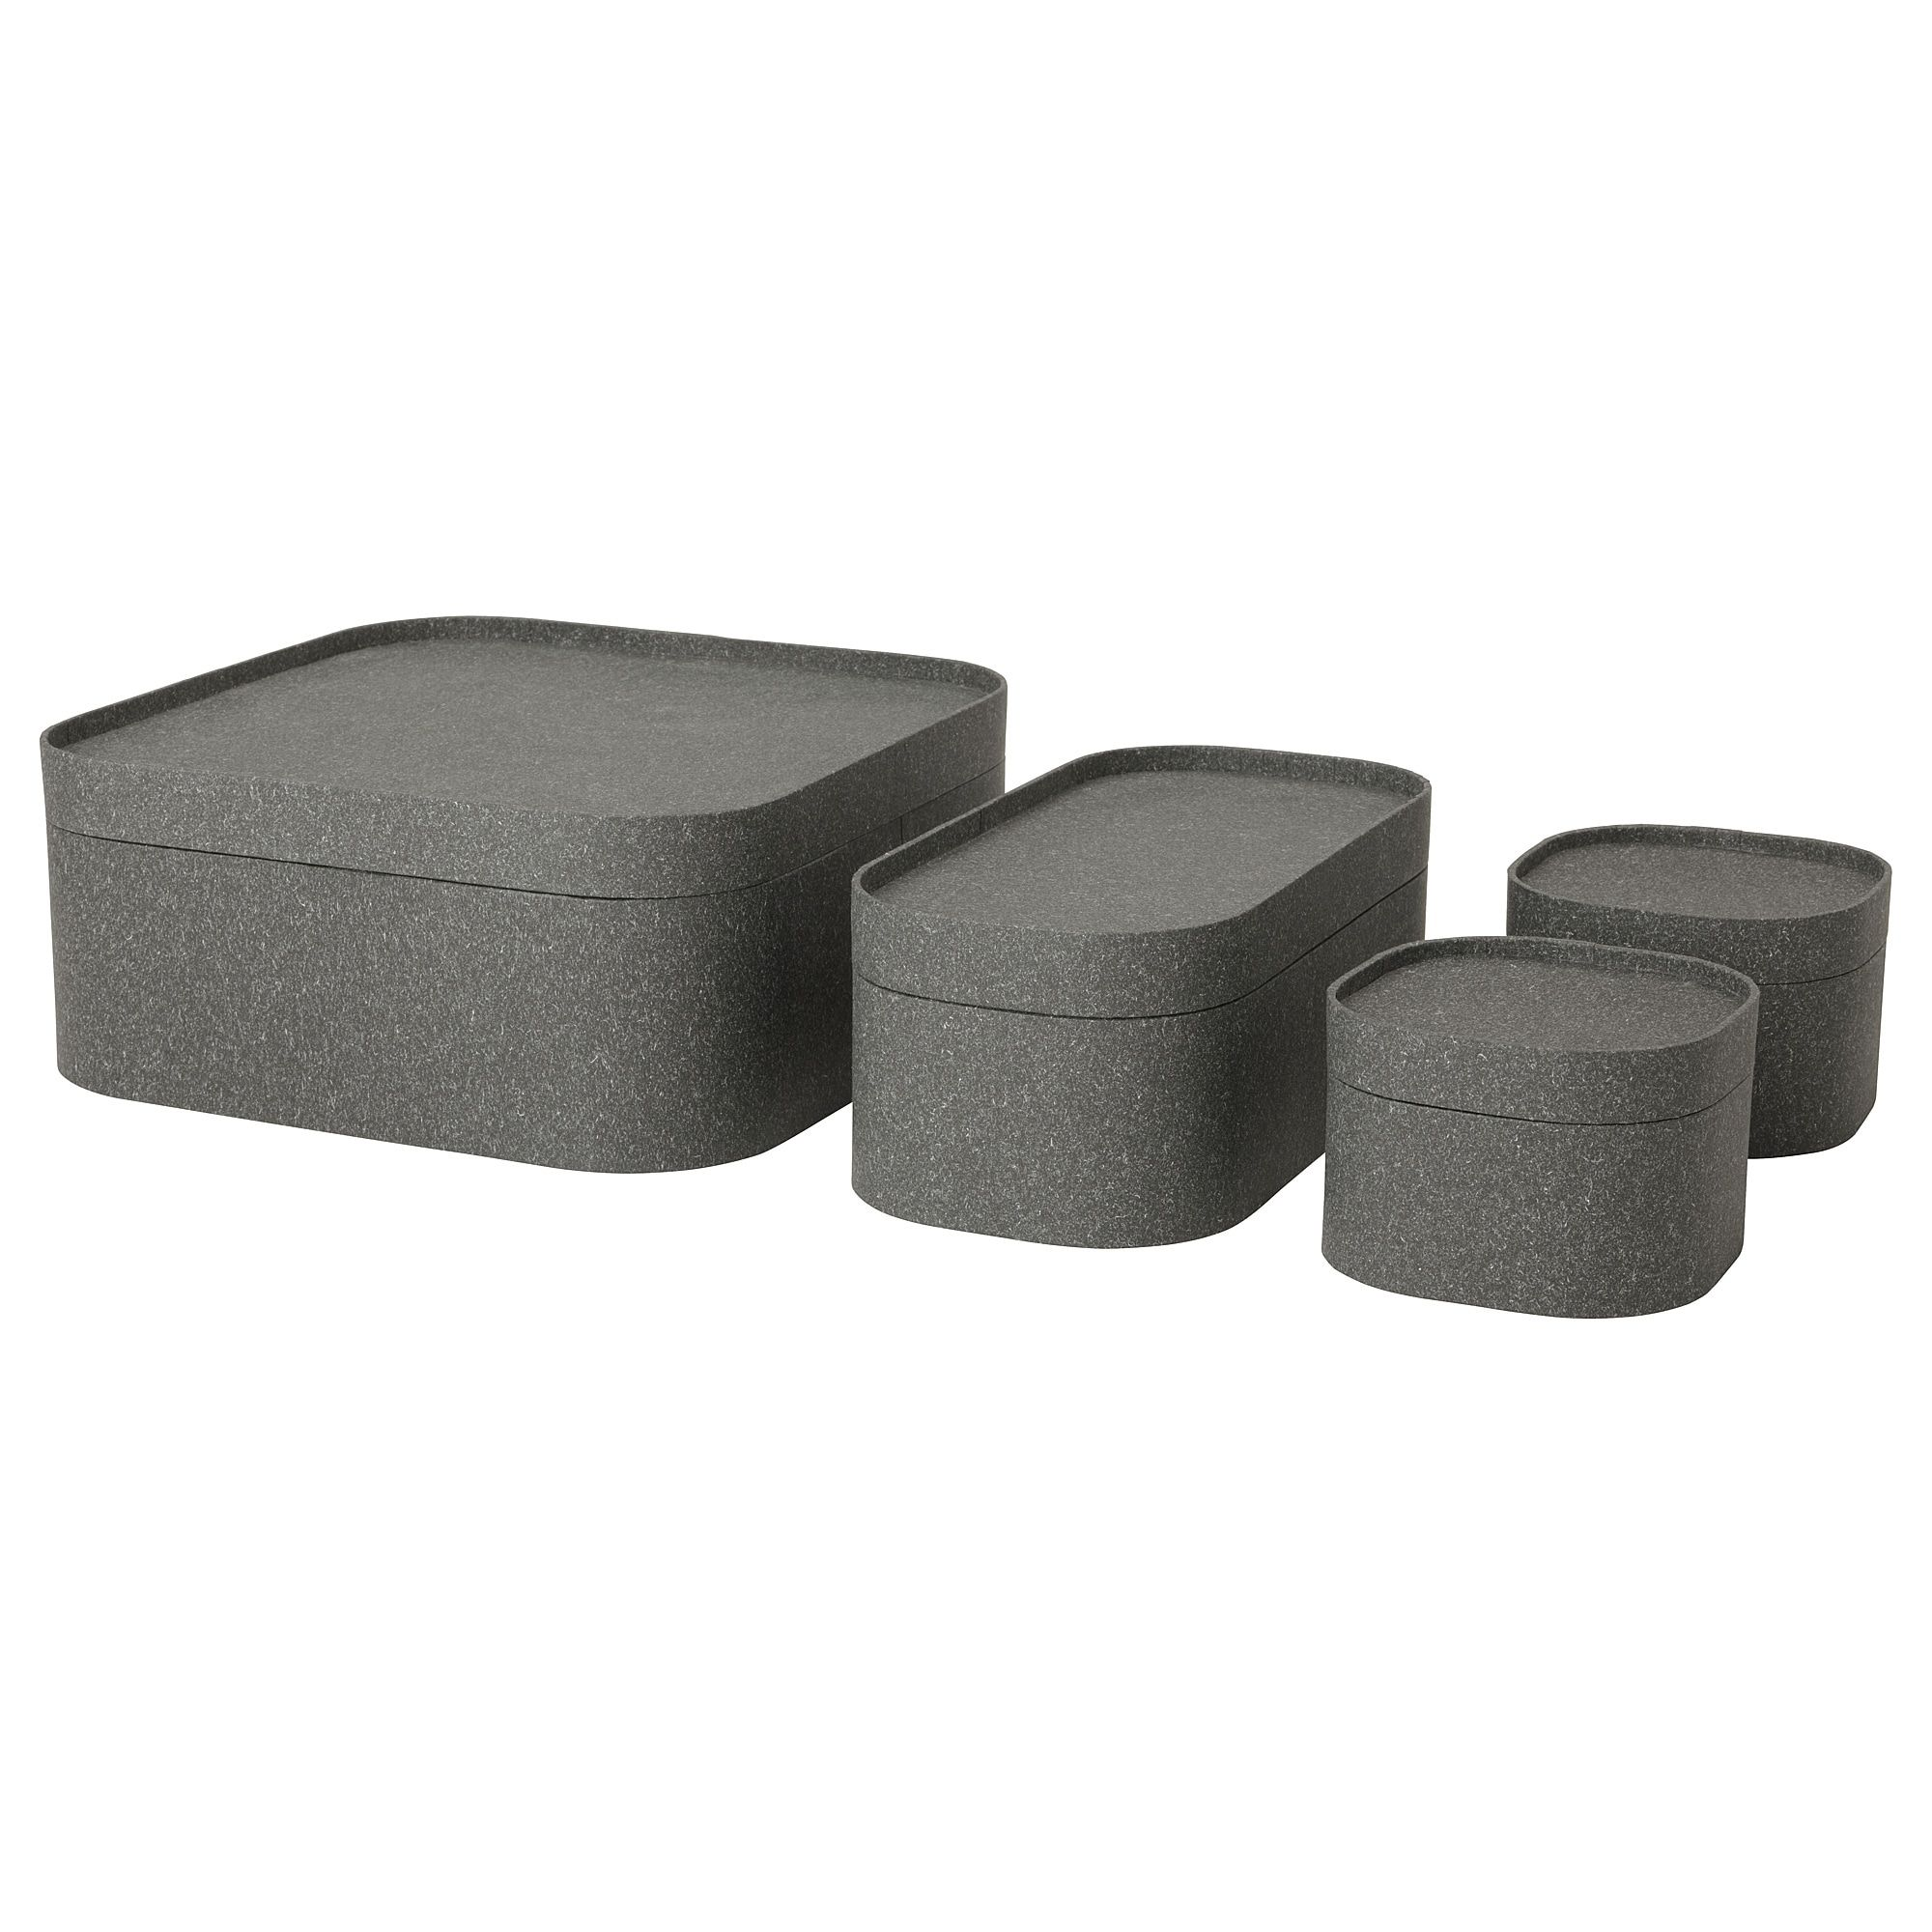 Schaukasten Ikea Sammanhang Box With Lid Set Of 4 Dark Gray Living Room Design